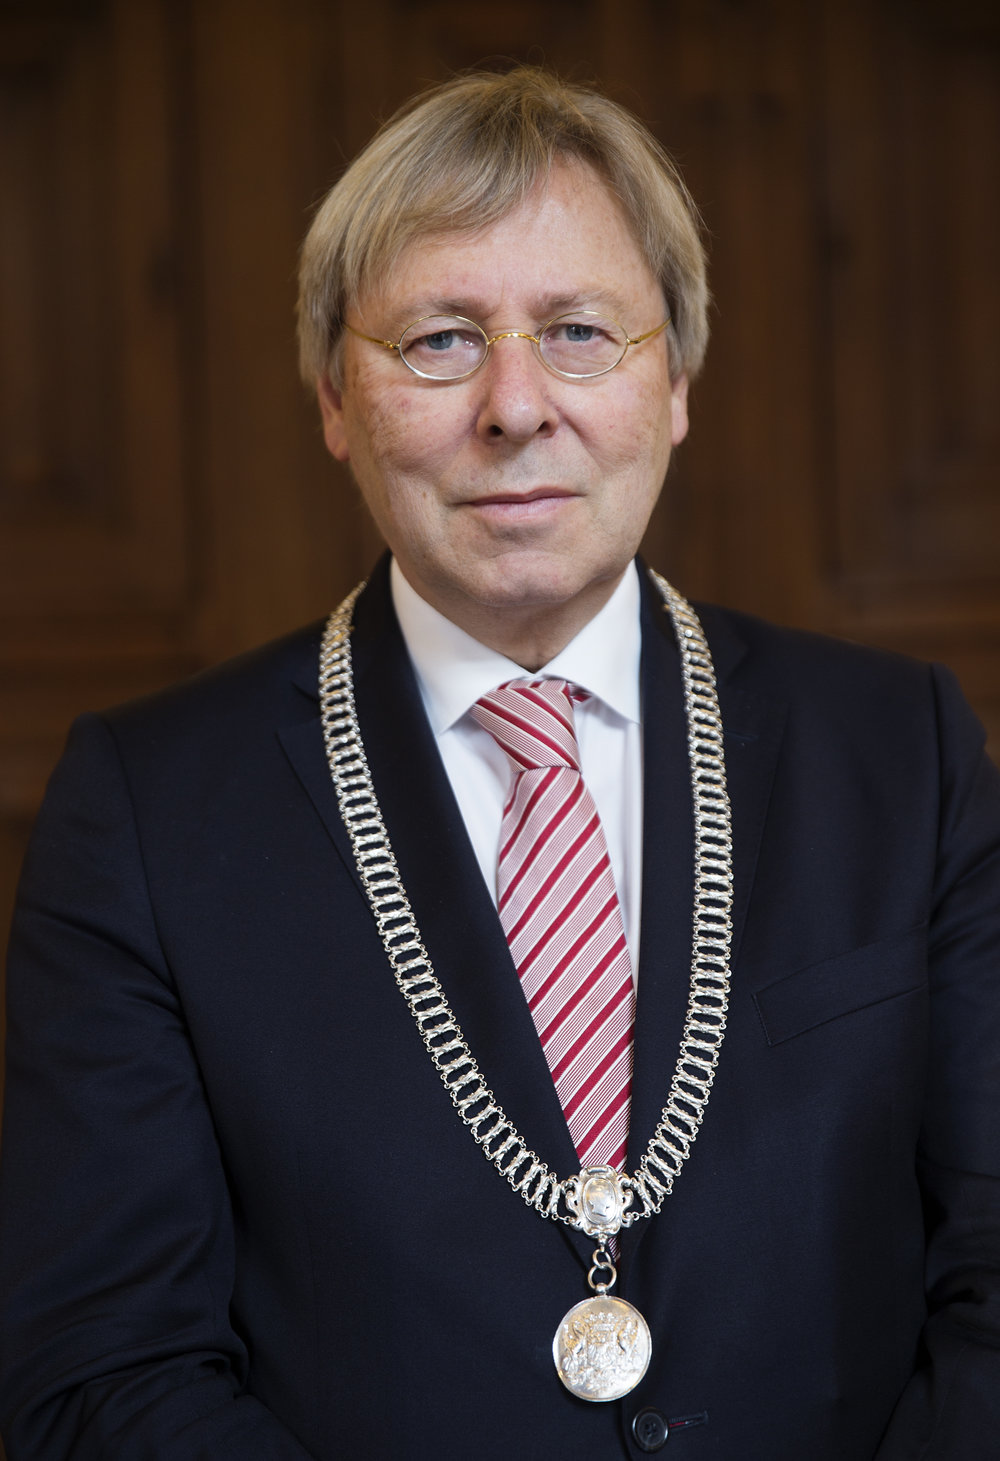 Peter den Oudsten - Mayor of the city of Groningen